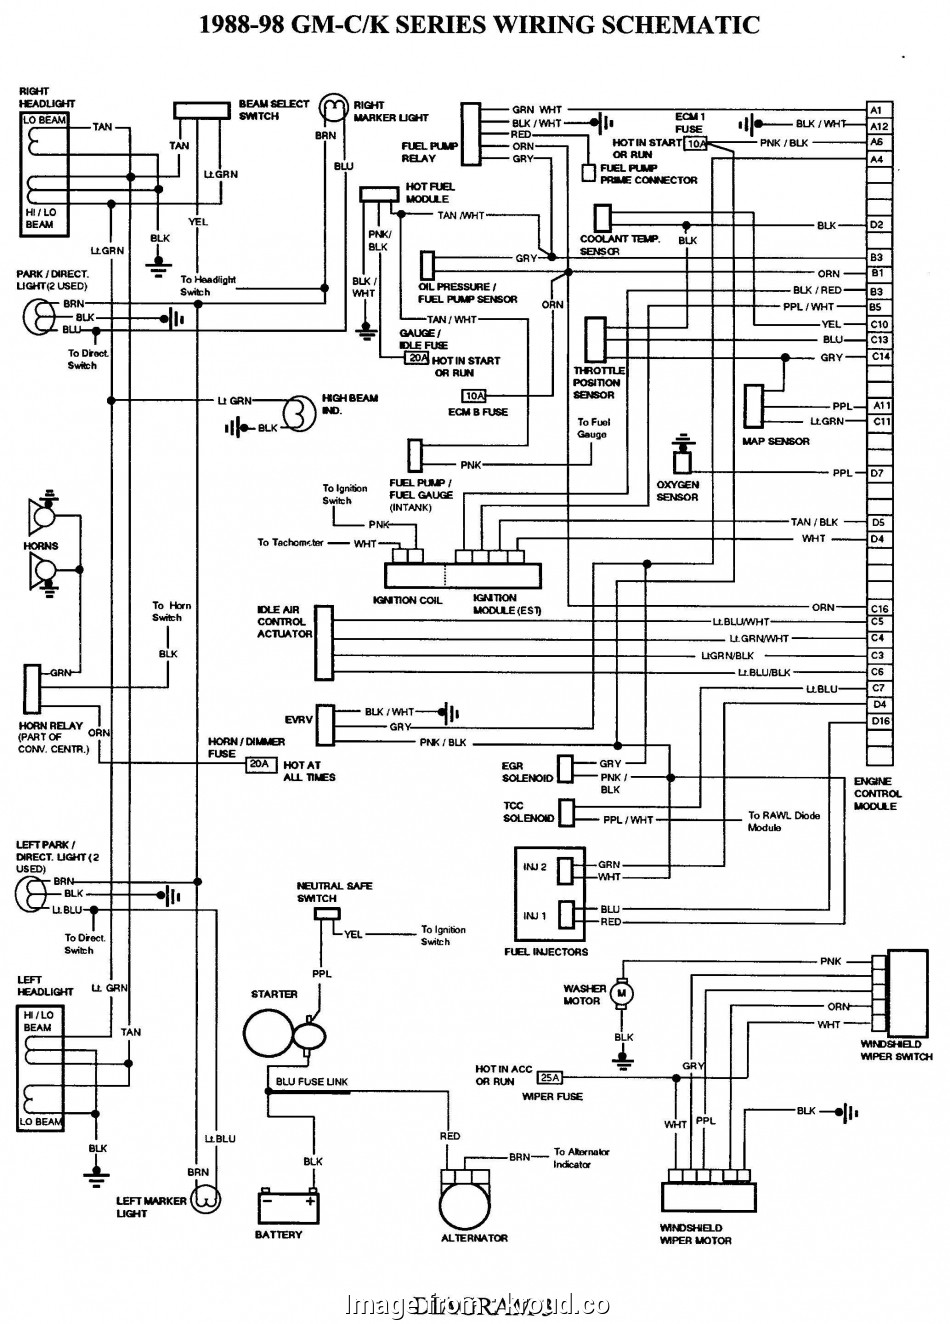 speaker wire color chart 1998, Jimmy Wiring Tail Light Data Wiring Diagrams \u2022 Speaker Wire Color Code 1969 Ford Wiring Color Codes Speaker Wire Color Chart Fantastic 1998, Jimmy Wiring Tail Light Data Wiring Diagrams \U2022 Speaker Wire Color Code 1969 Ford Wiring Color Codes Collections